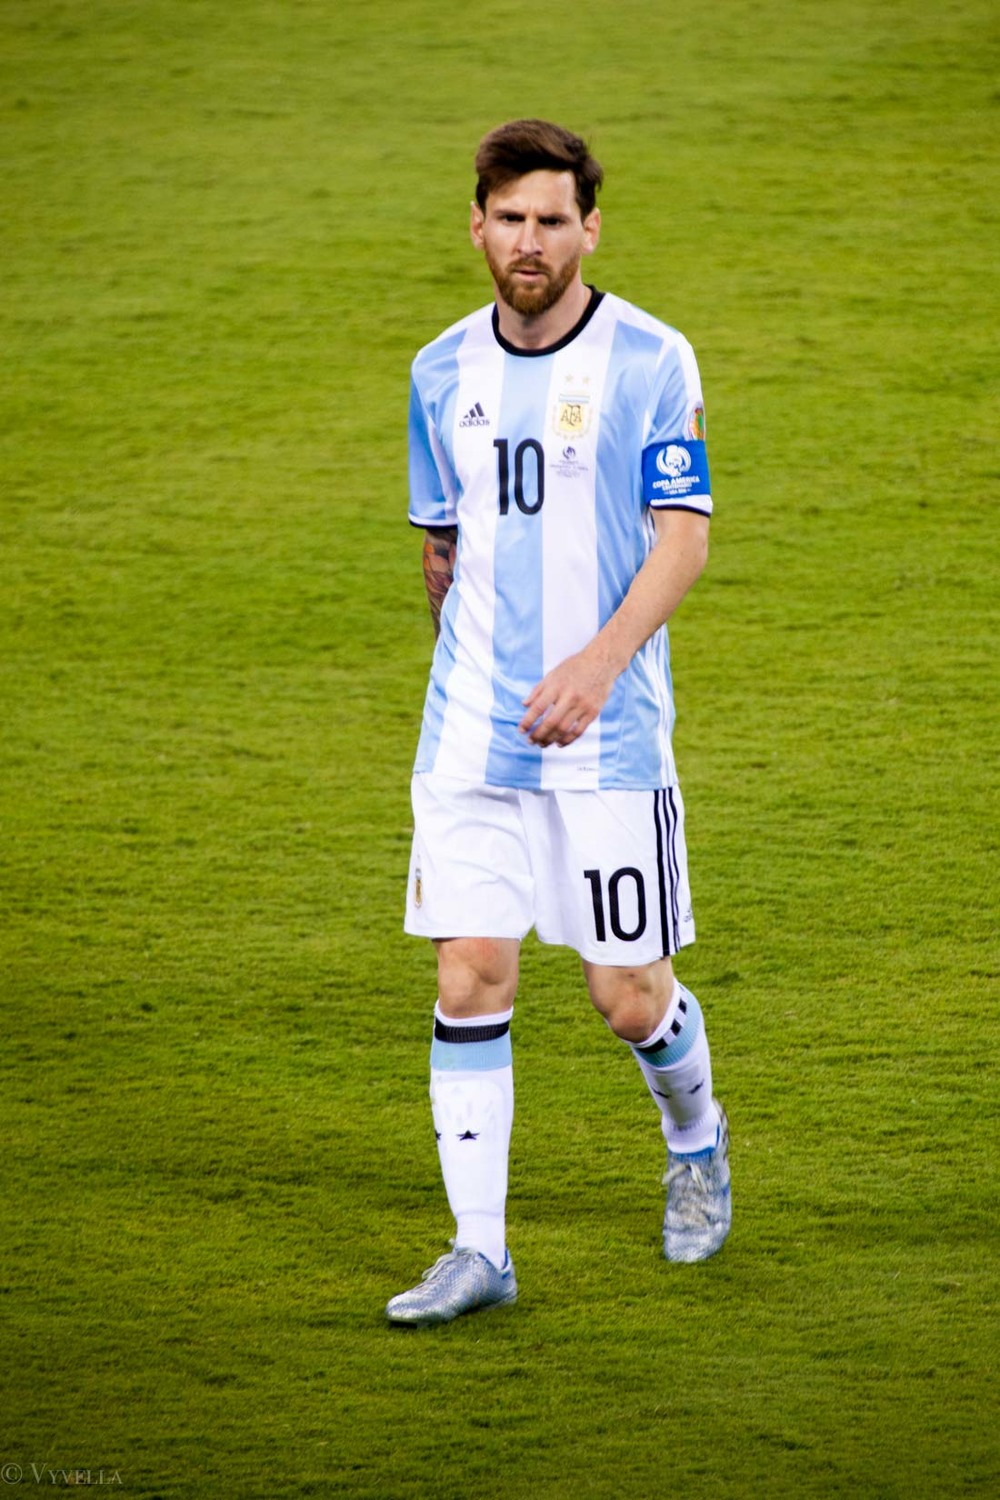 lifestyle_lionel-messi-on-copa-america-2016-final_02.jpg